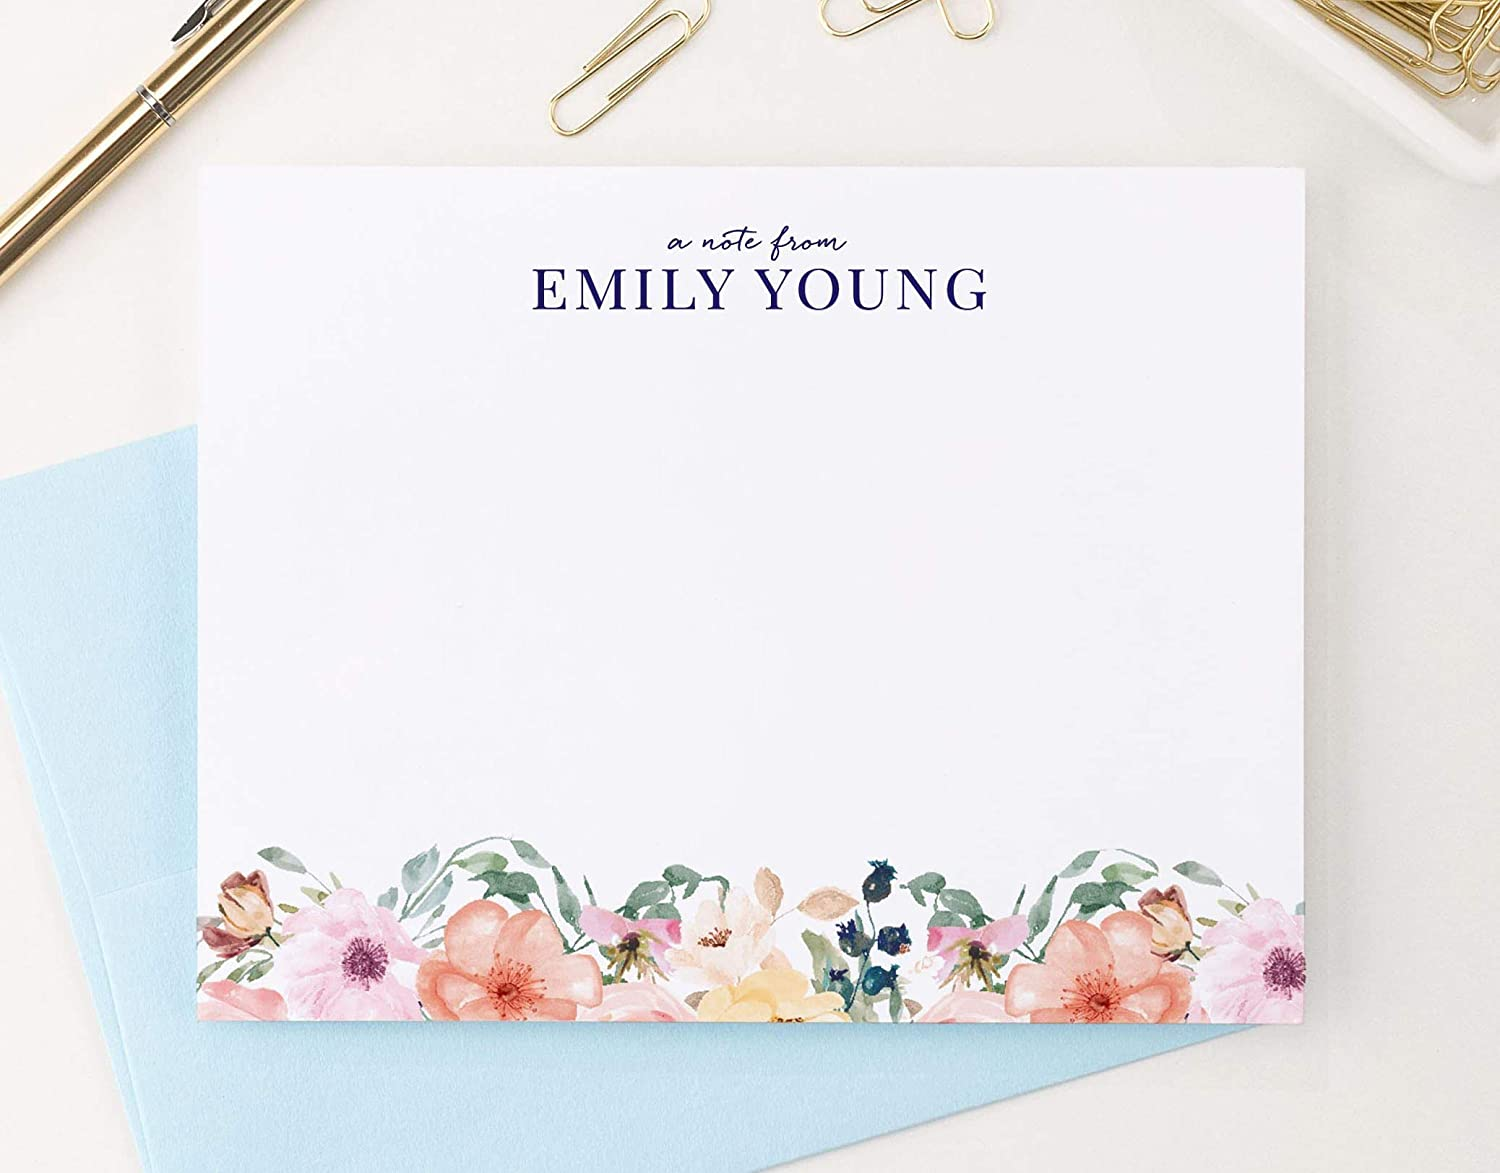 Personalized Floral Stationery Set, Personalized stationary for Women, Your Choice of Colors and Quantity